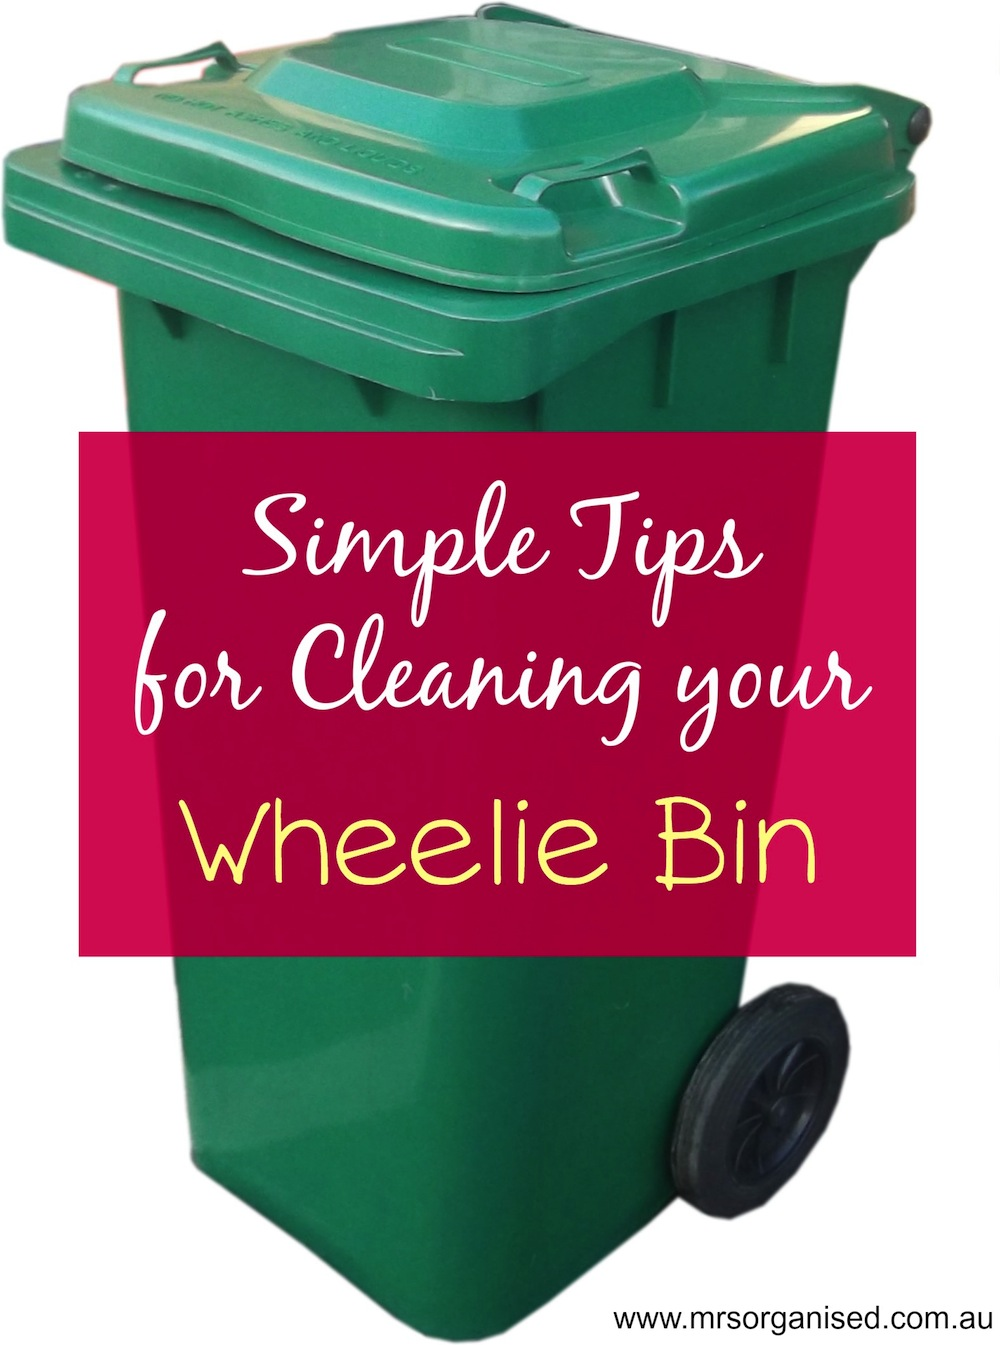 Simple Tips for Cleaning your Wheelie Bin 001